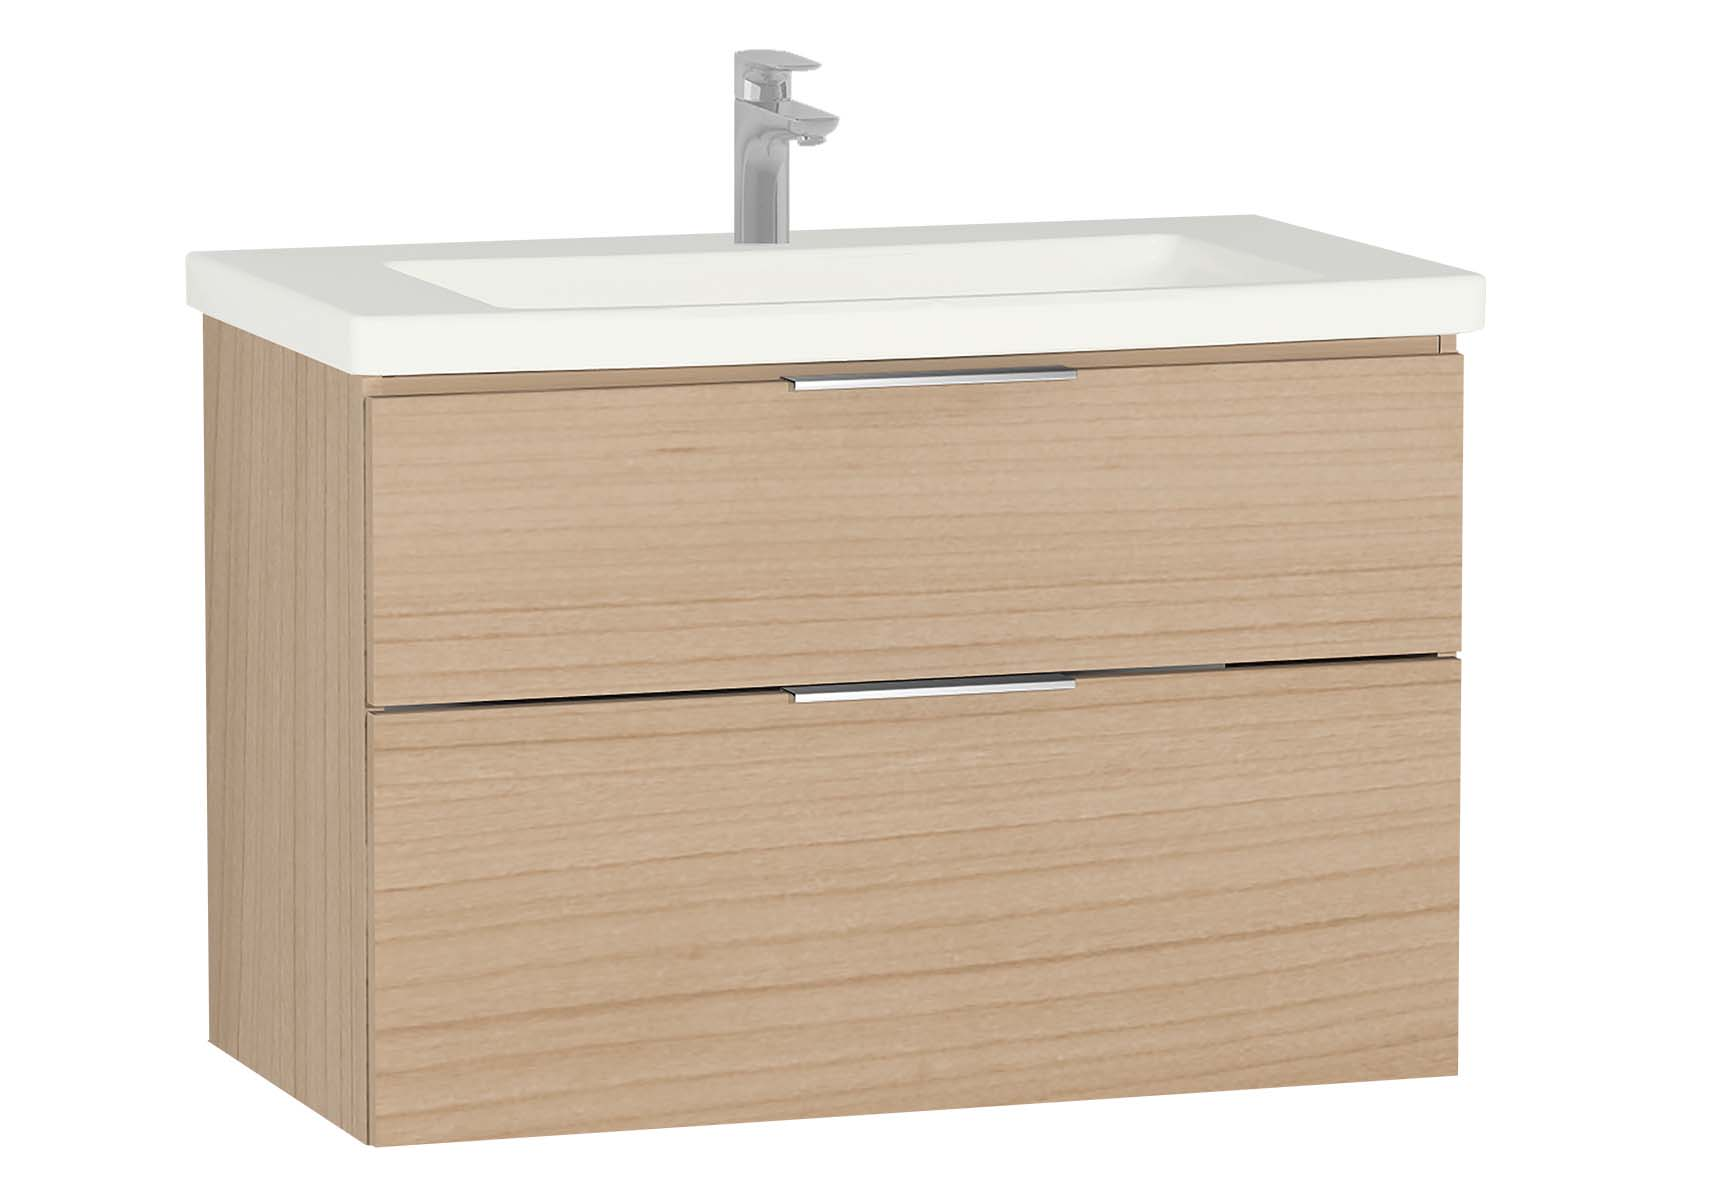 Central Washbasin Unit with 2 drawers, 90 cm, Golden Cherry, Ceramic Washbasin